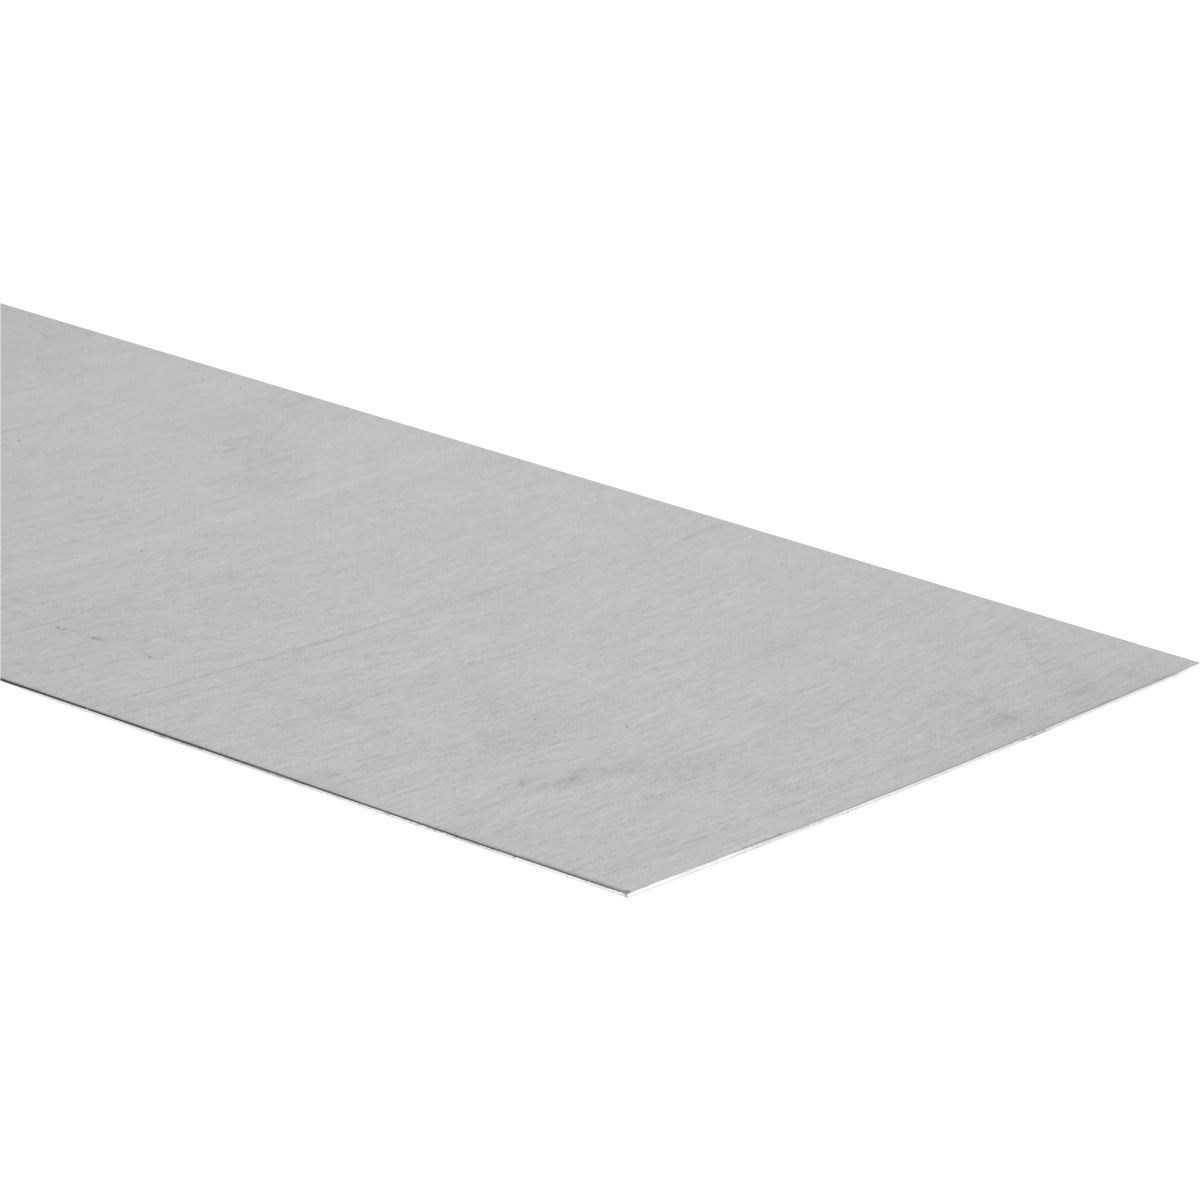 .025 6X24 ALUMINUM SHEET - N316307 by National Mfg Co